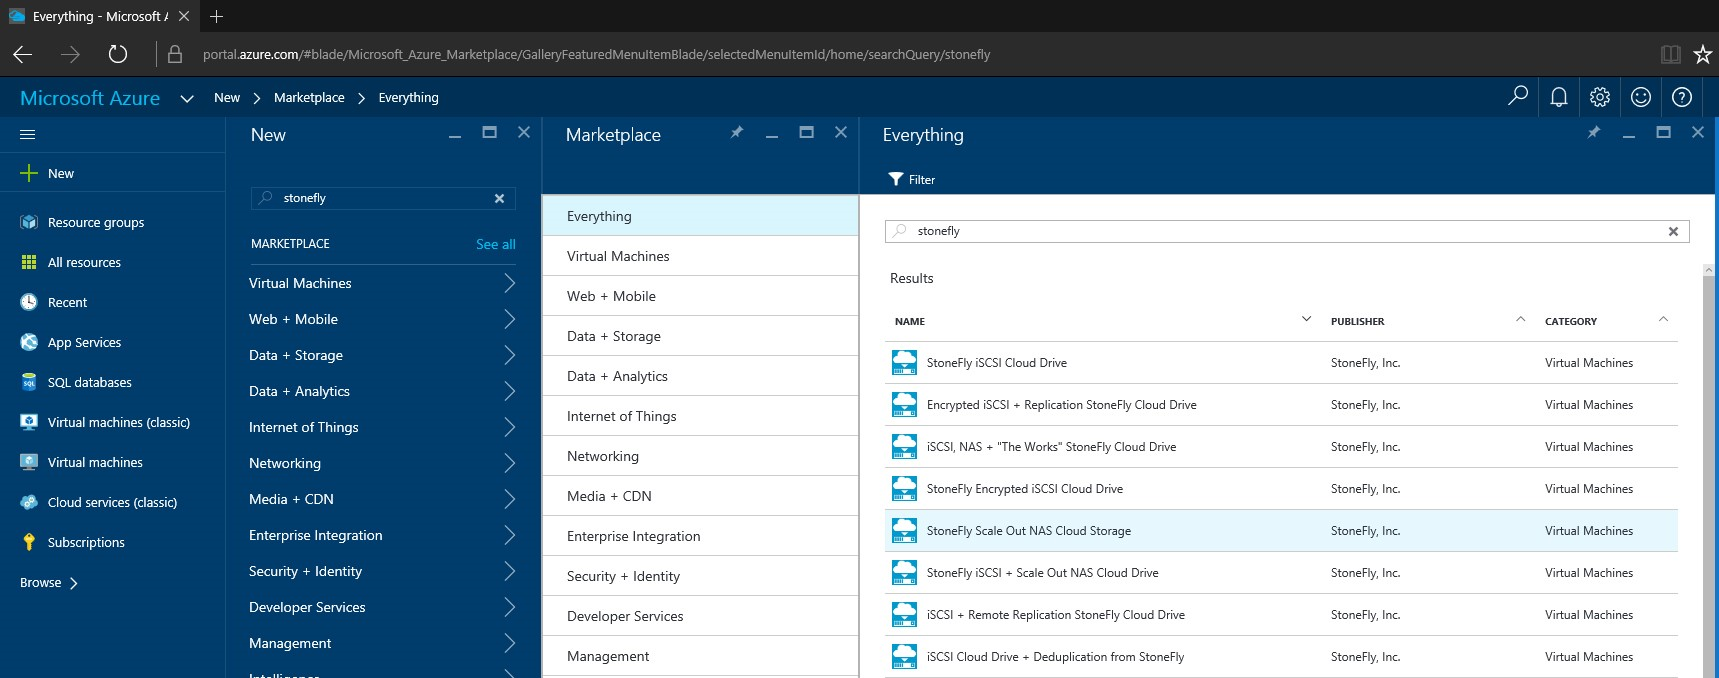 How to setup StoneFly Scale out NAS VMs in Microsoft Azure portal? 2